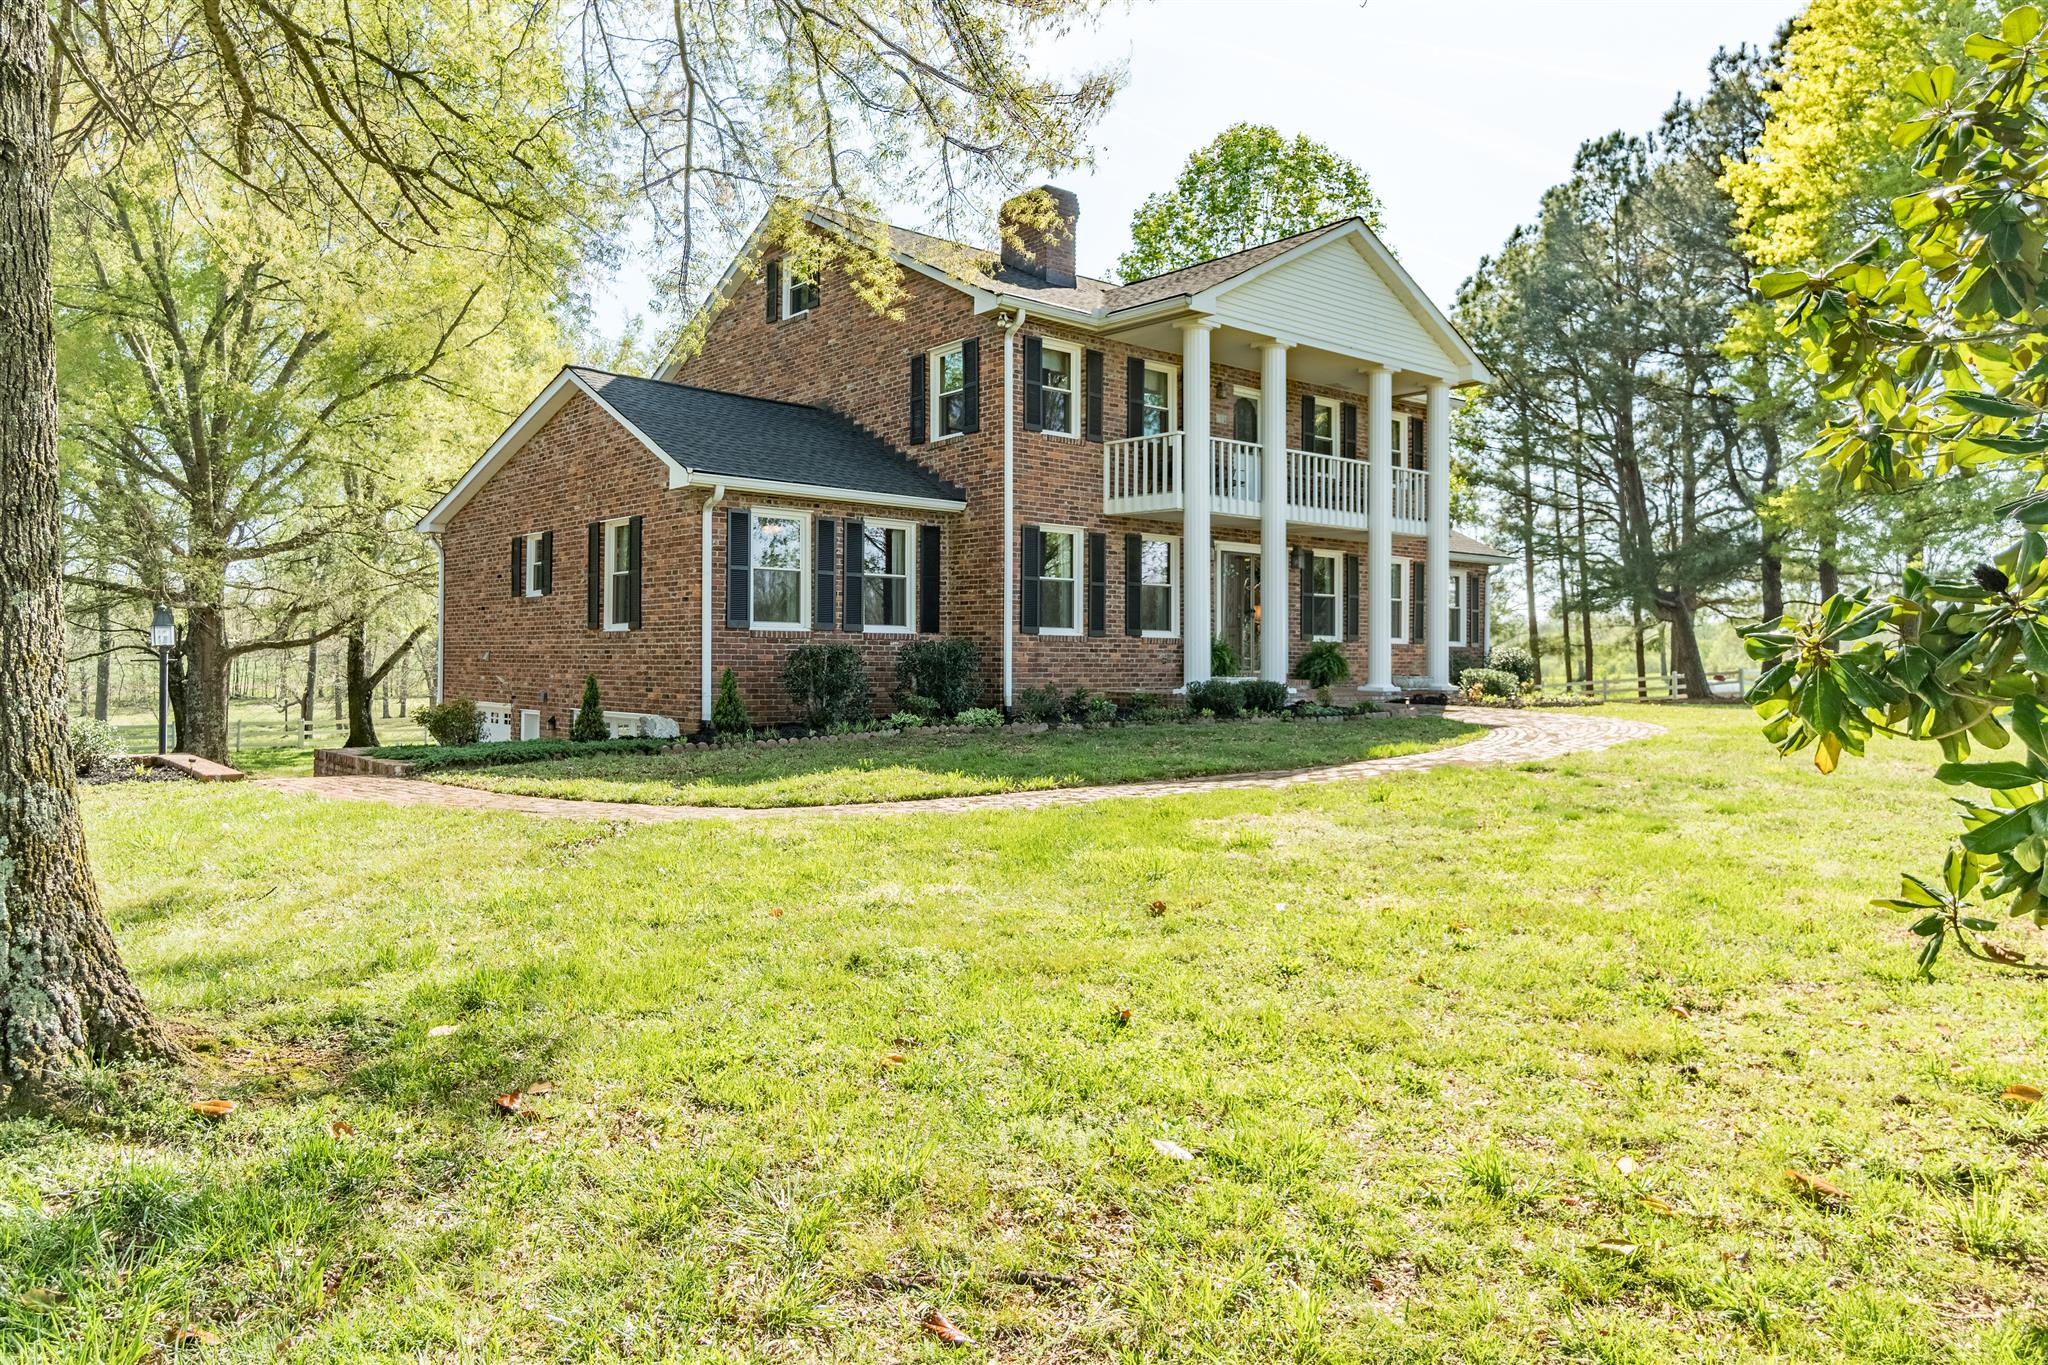 4409 Old Coopertown Rd, Springfield, TN 37172 - Springfield, TN real estate listing